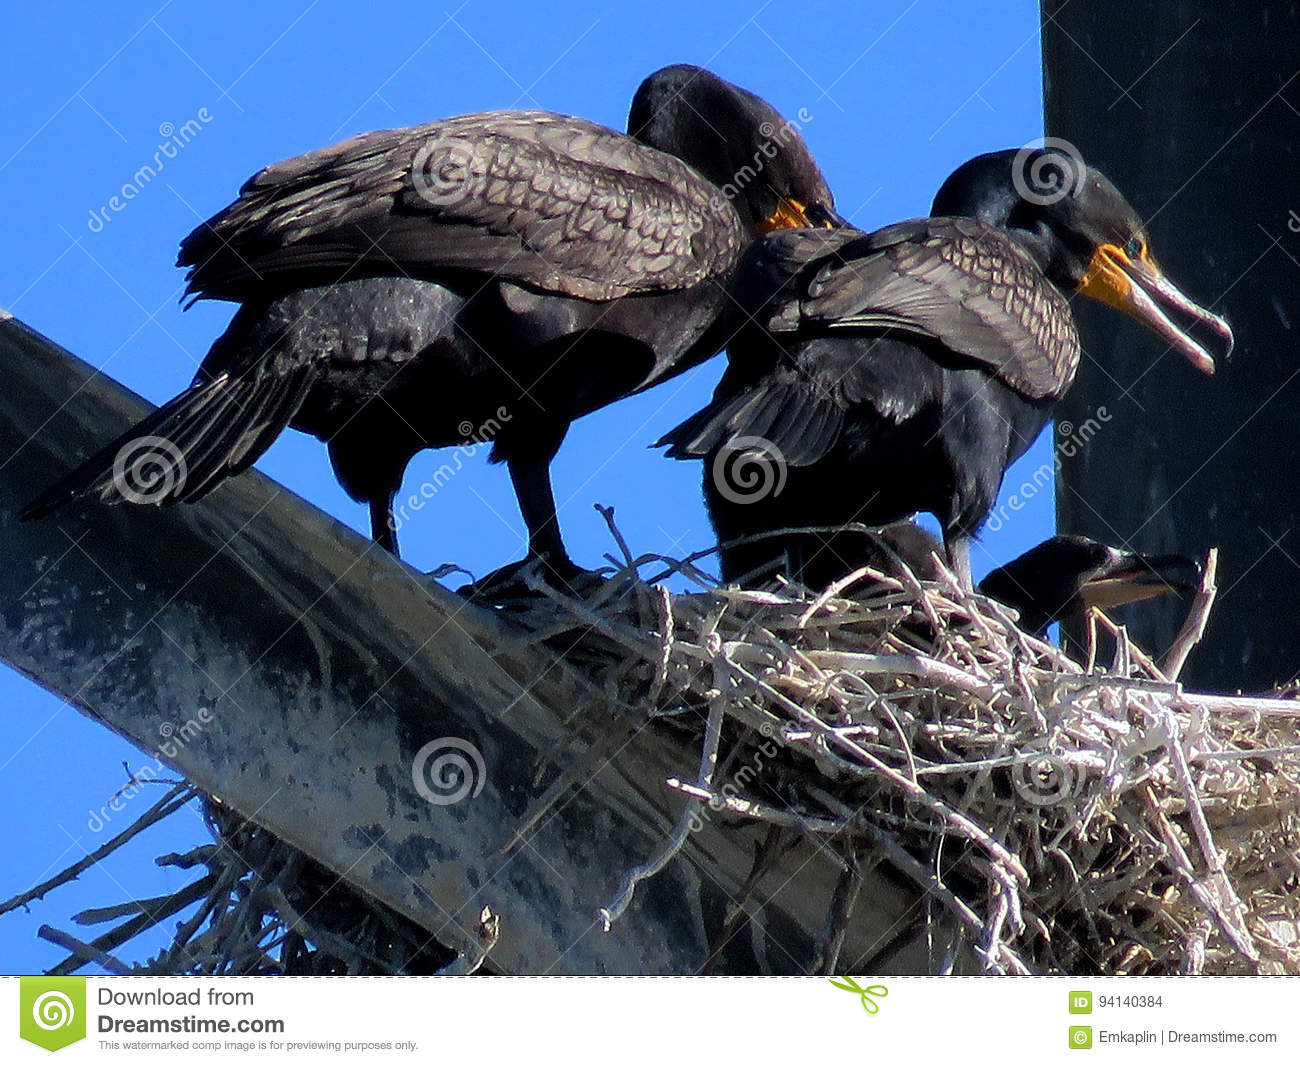 Toronto Cormorant family on the transmission line tower 2017